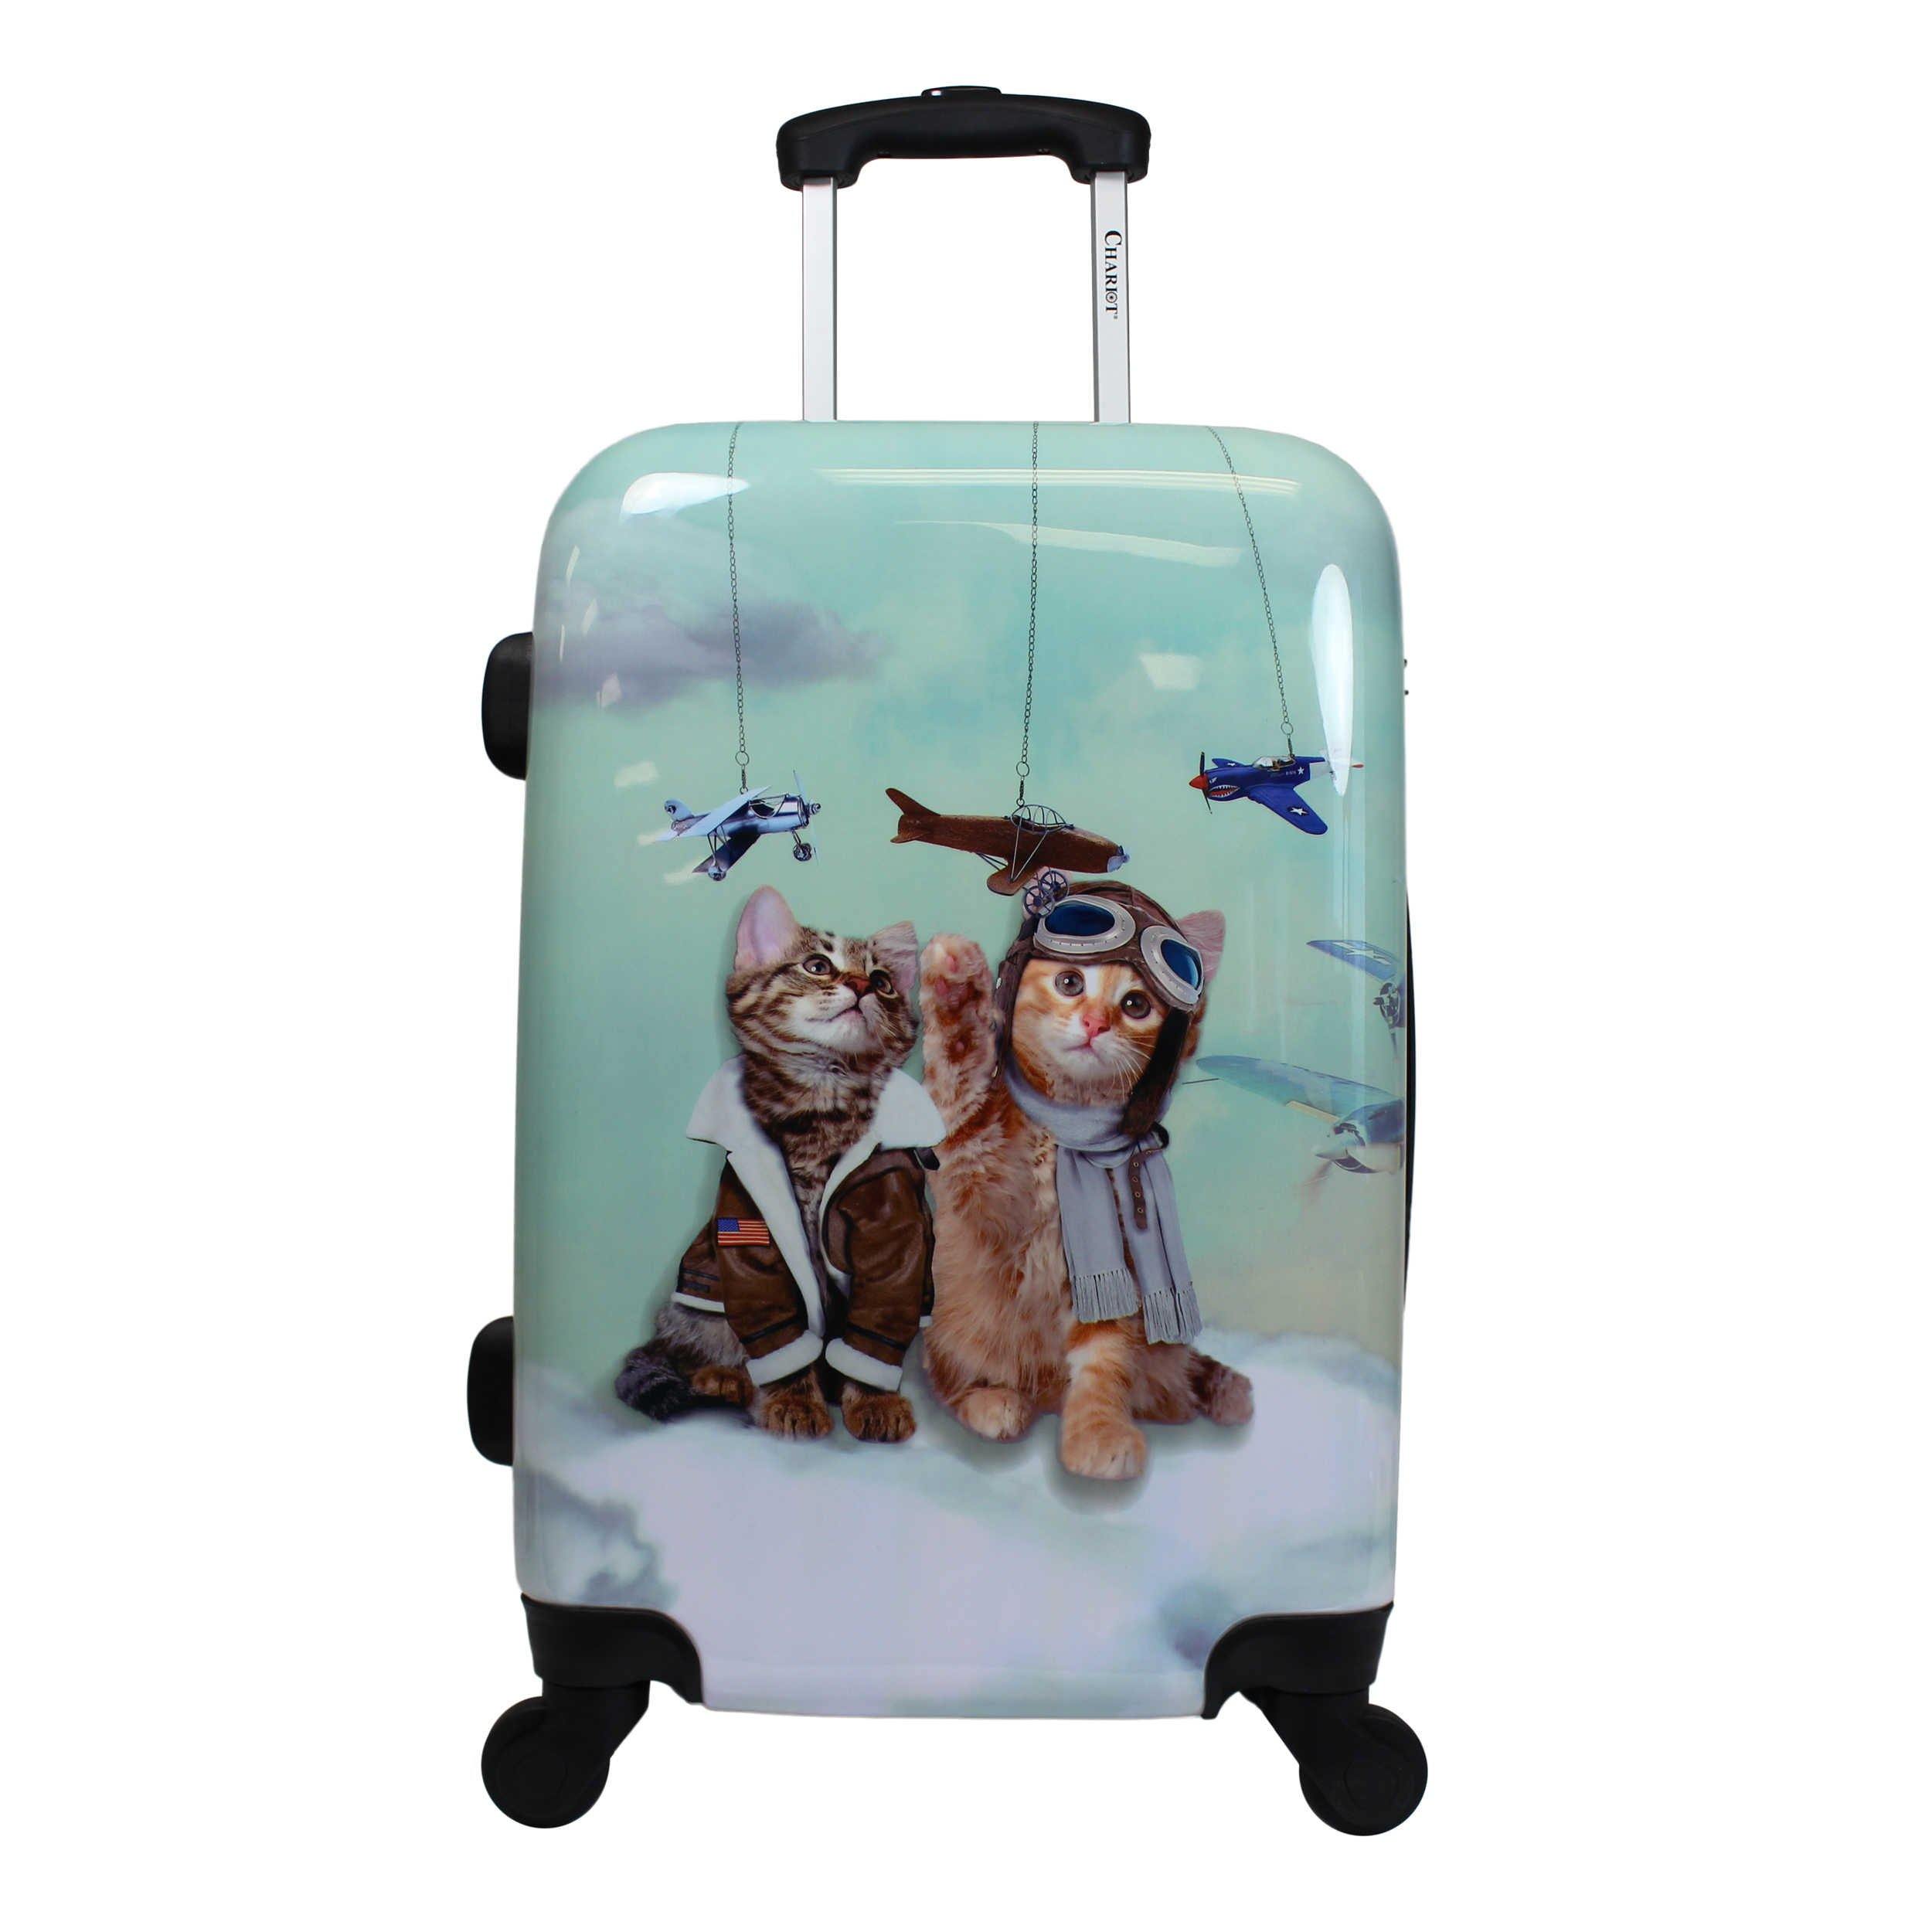 Playful Kittie Pilots Theme Spinner Lightweight Expandable Carry On Luggage Suitcase, Whimsical Cute Animals Prints, Hardshell, Hardsided, Multi Compartment, Handle Travel Case, Blue, Brown, Size 20''